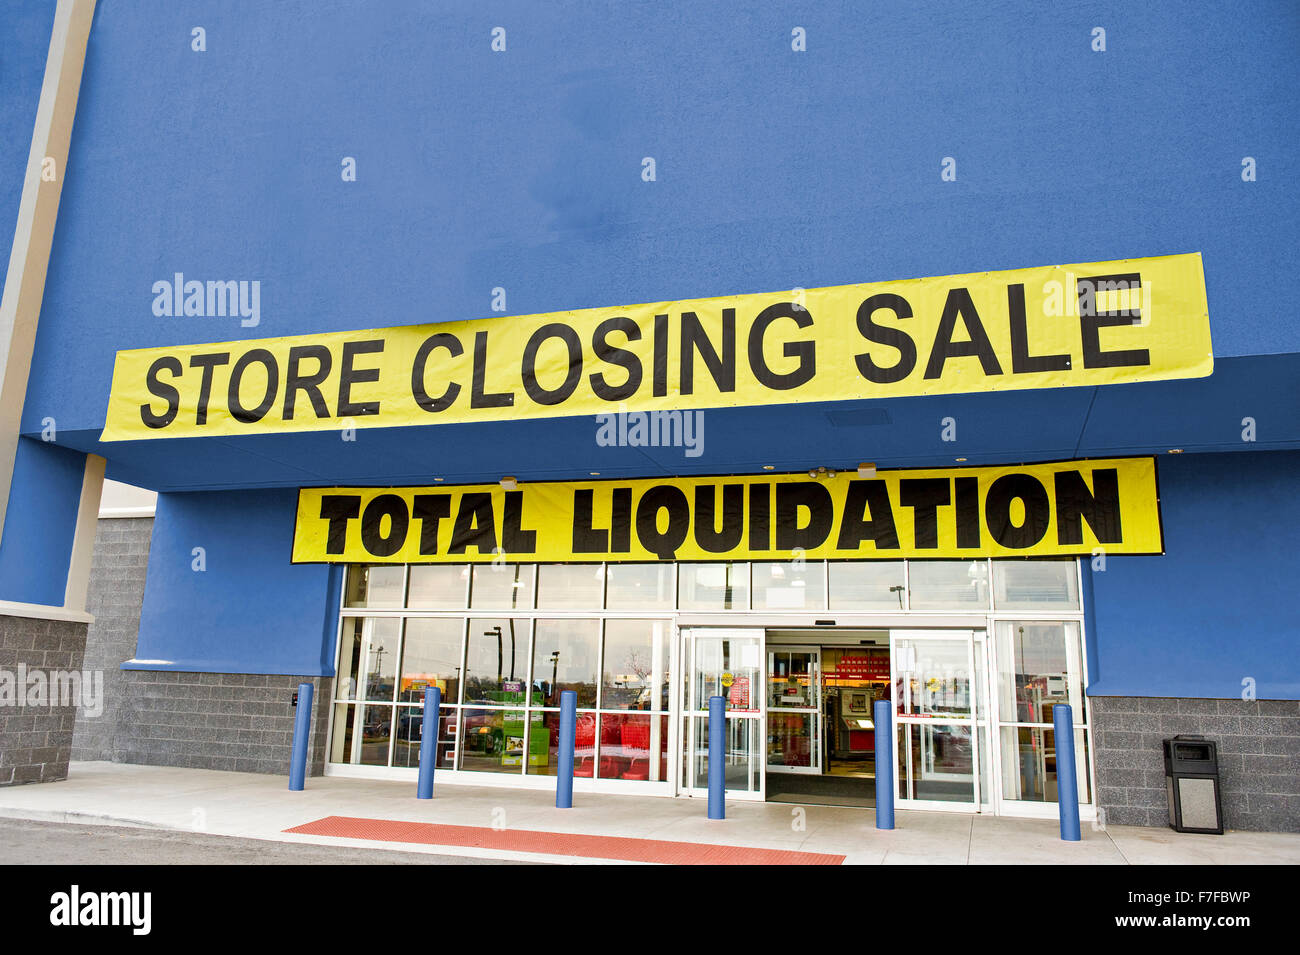 Bankruptcy Liquidation Sale - Stock Image